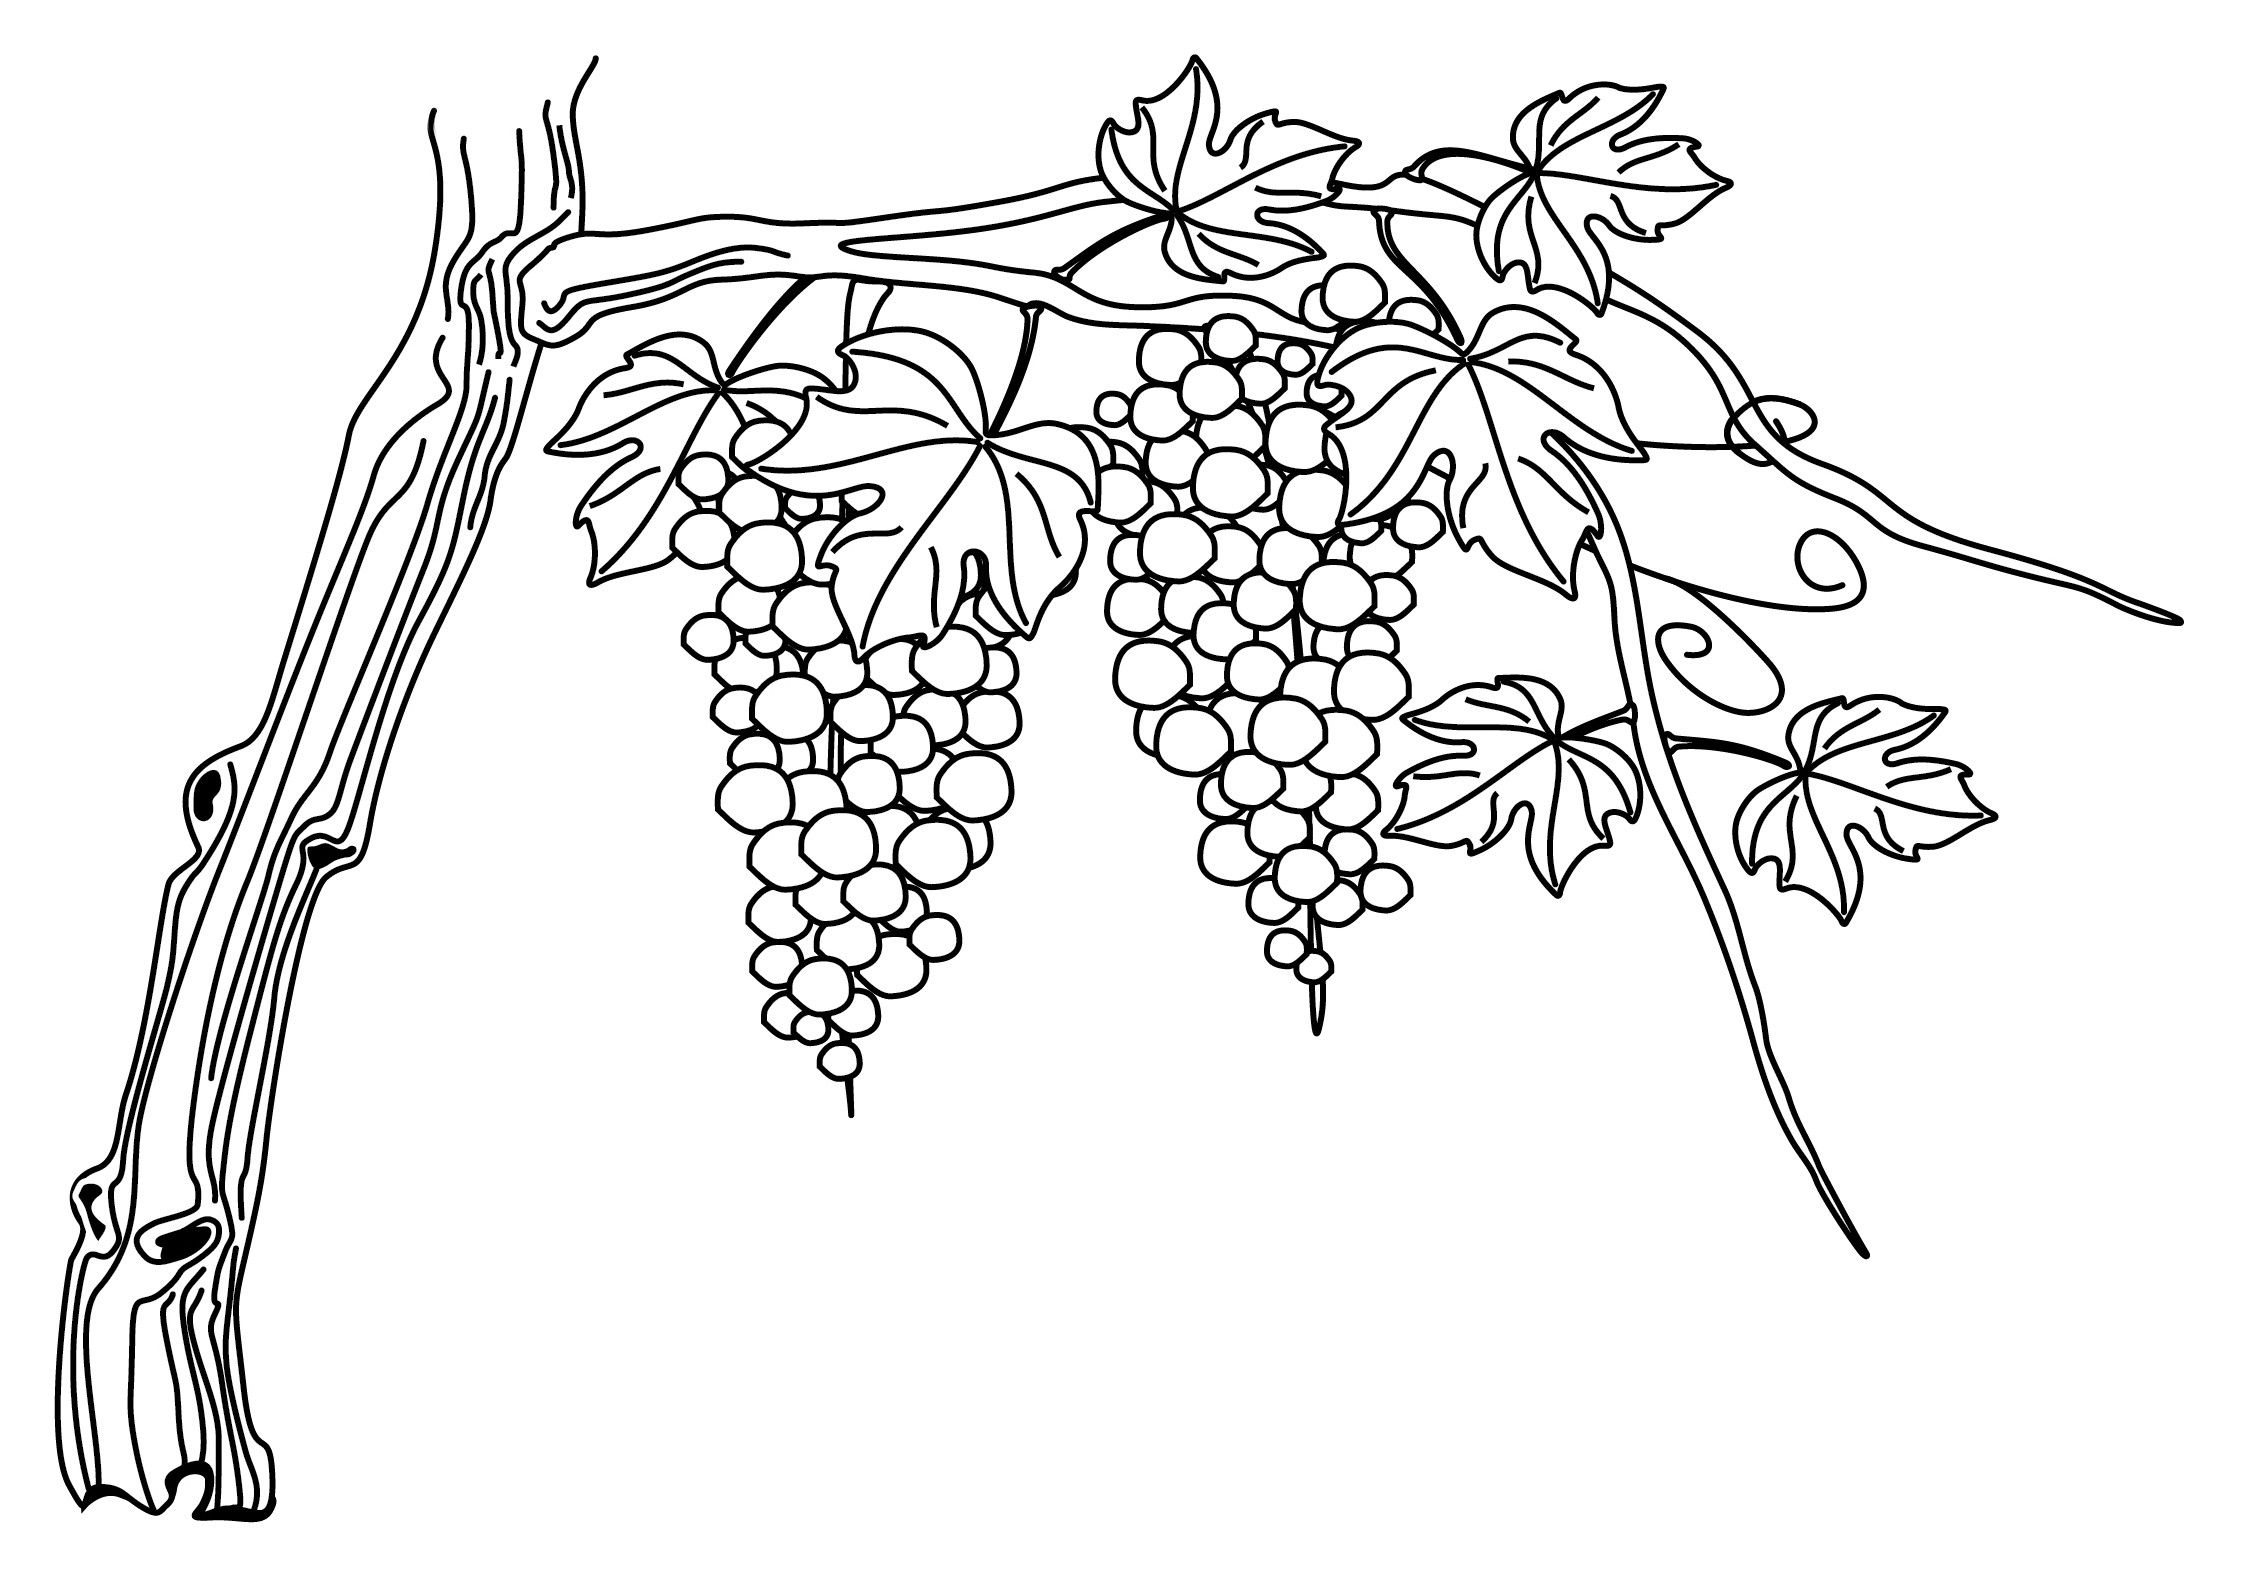 An illustration of a grapevine.